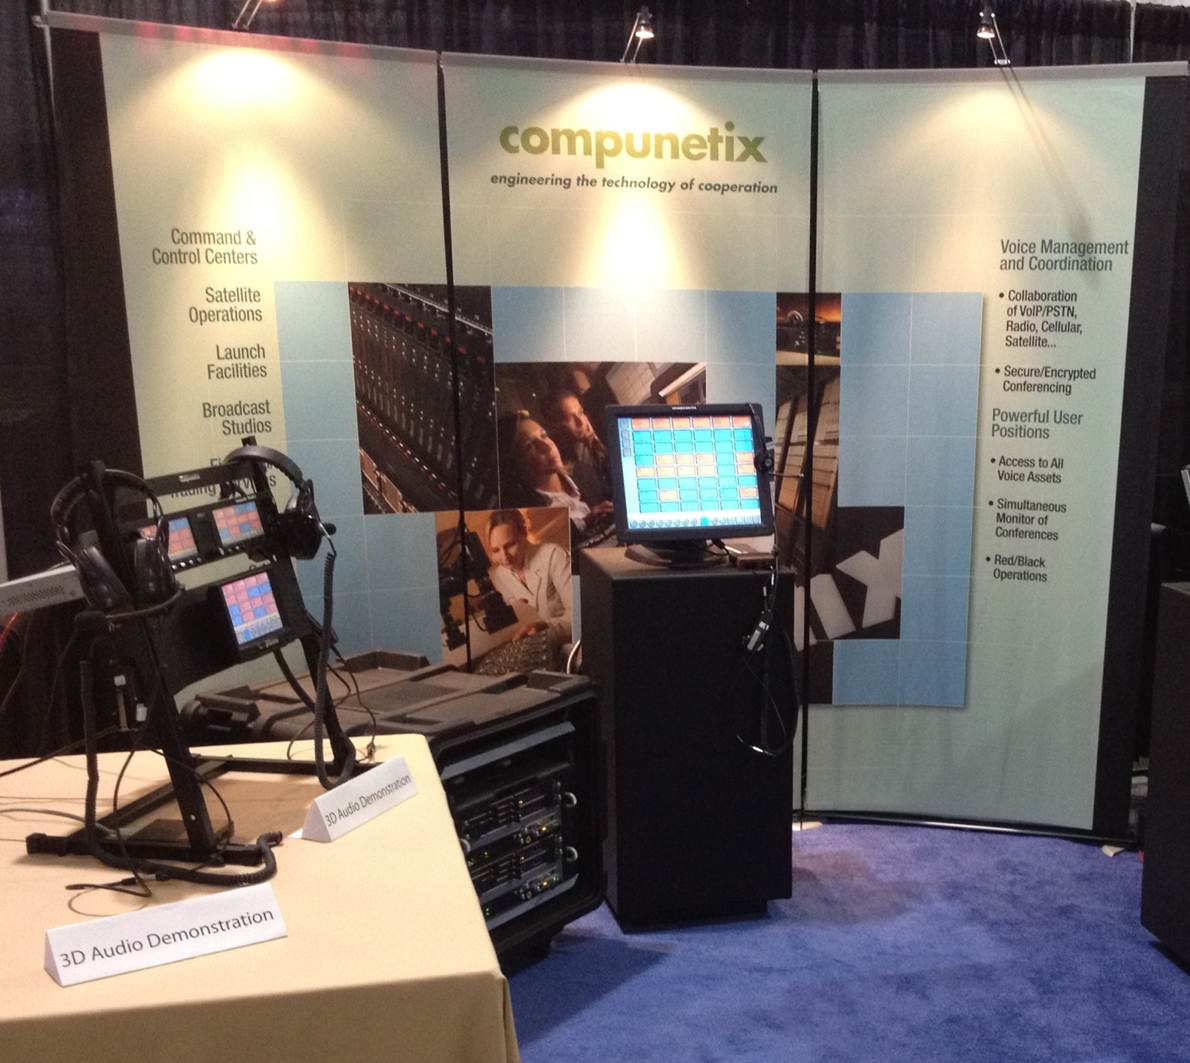 Compunetix FSD Booth from a Previous Show